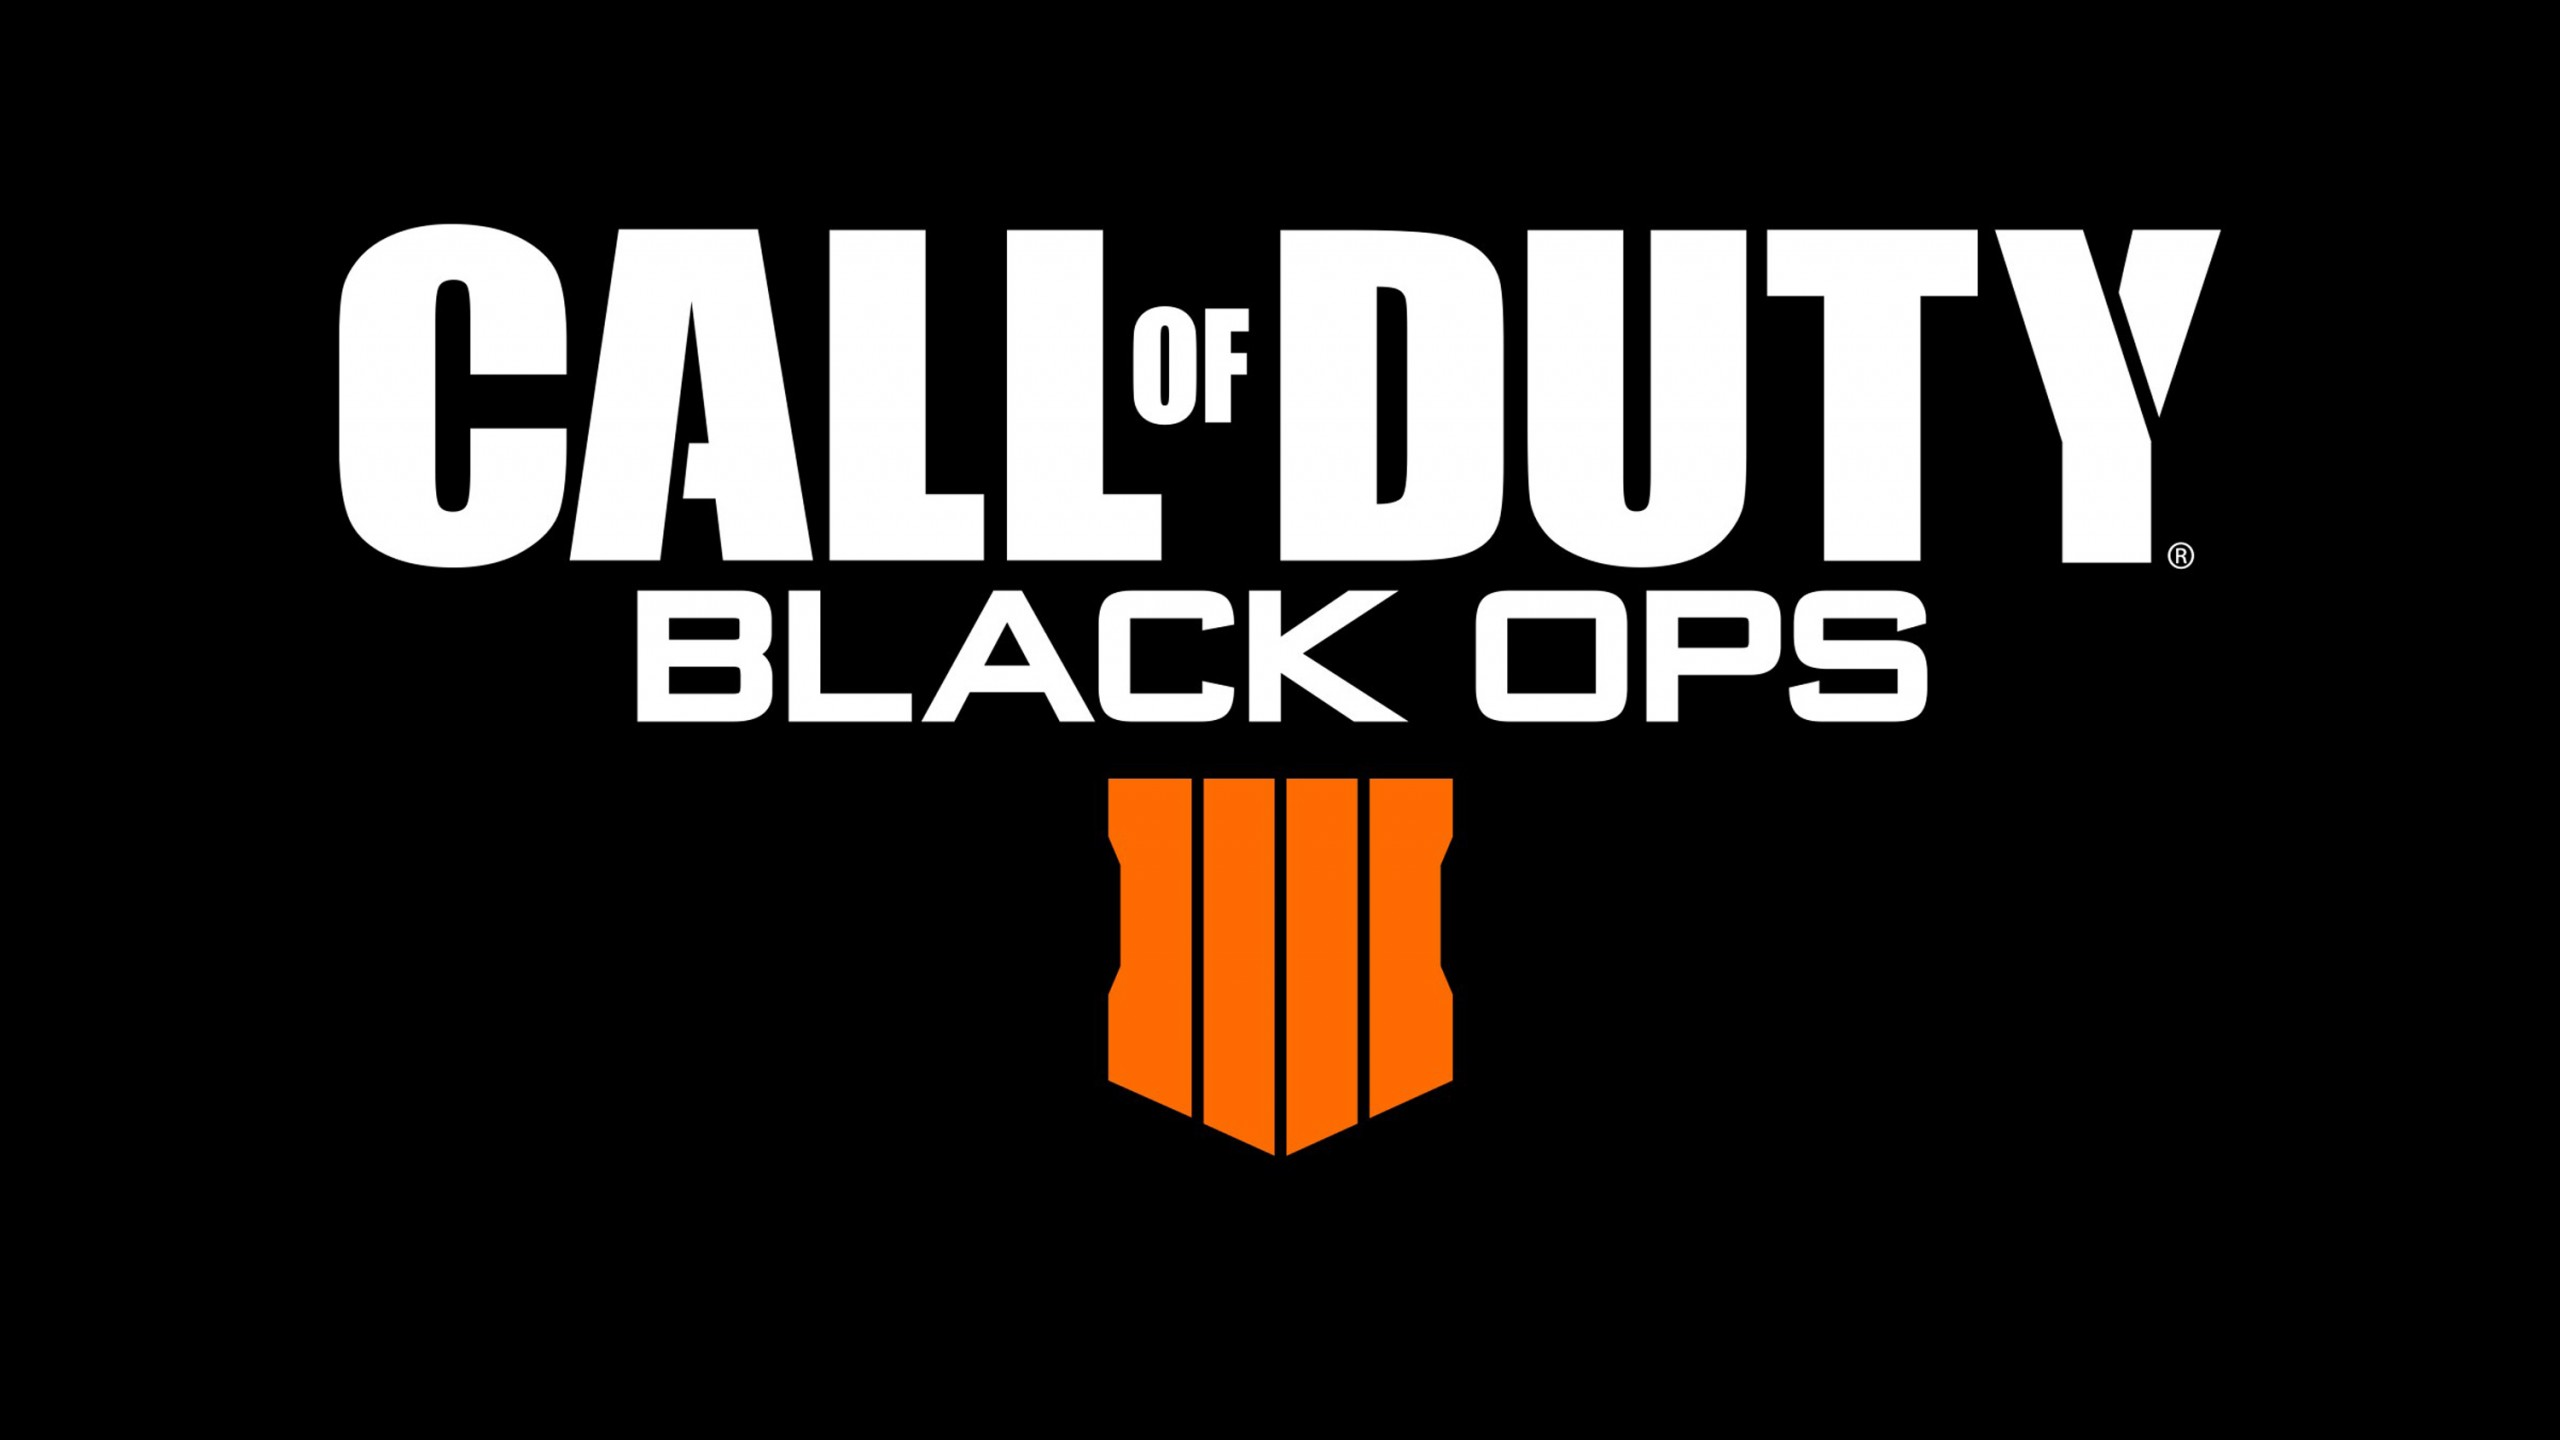 Fondos de pantalla Logo Call of Duty Black Ops 4